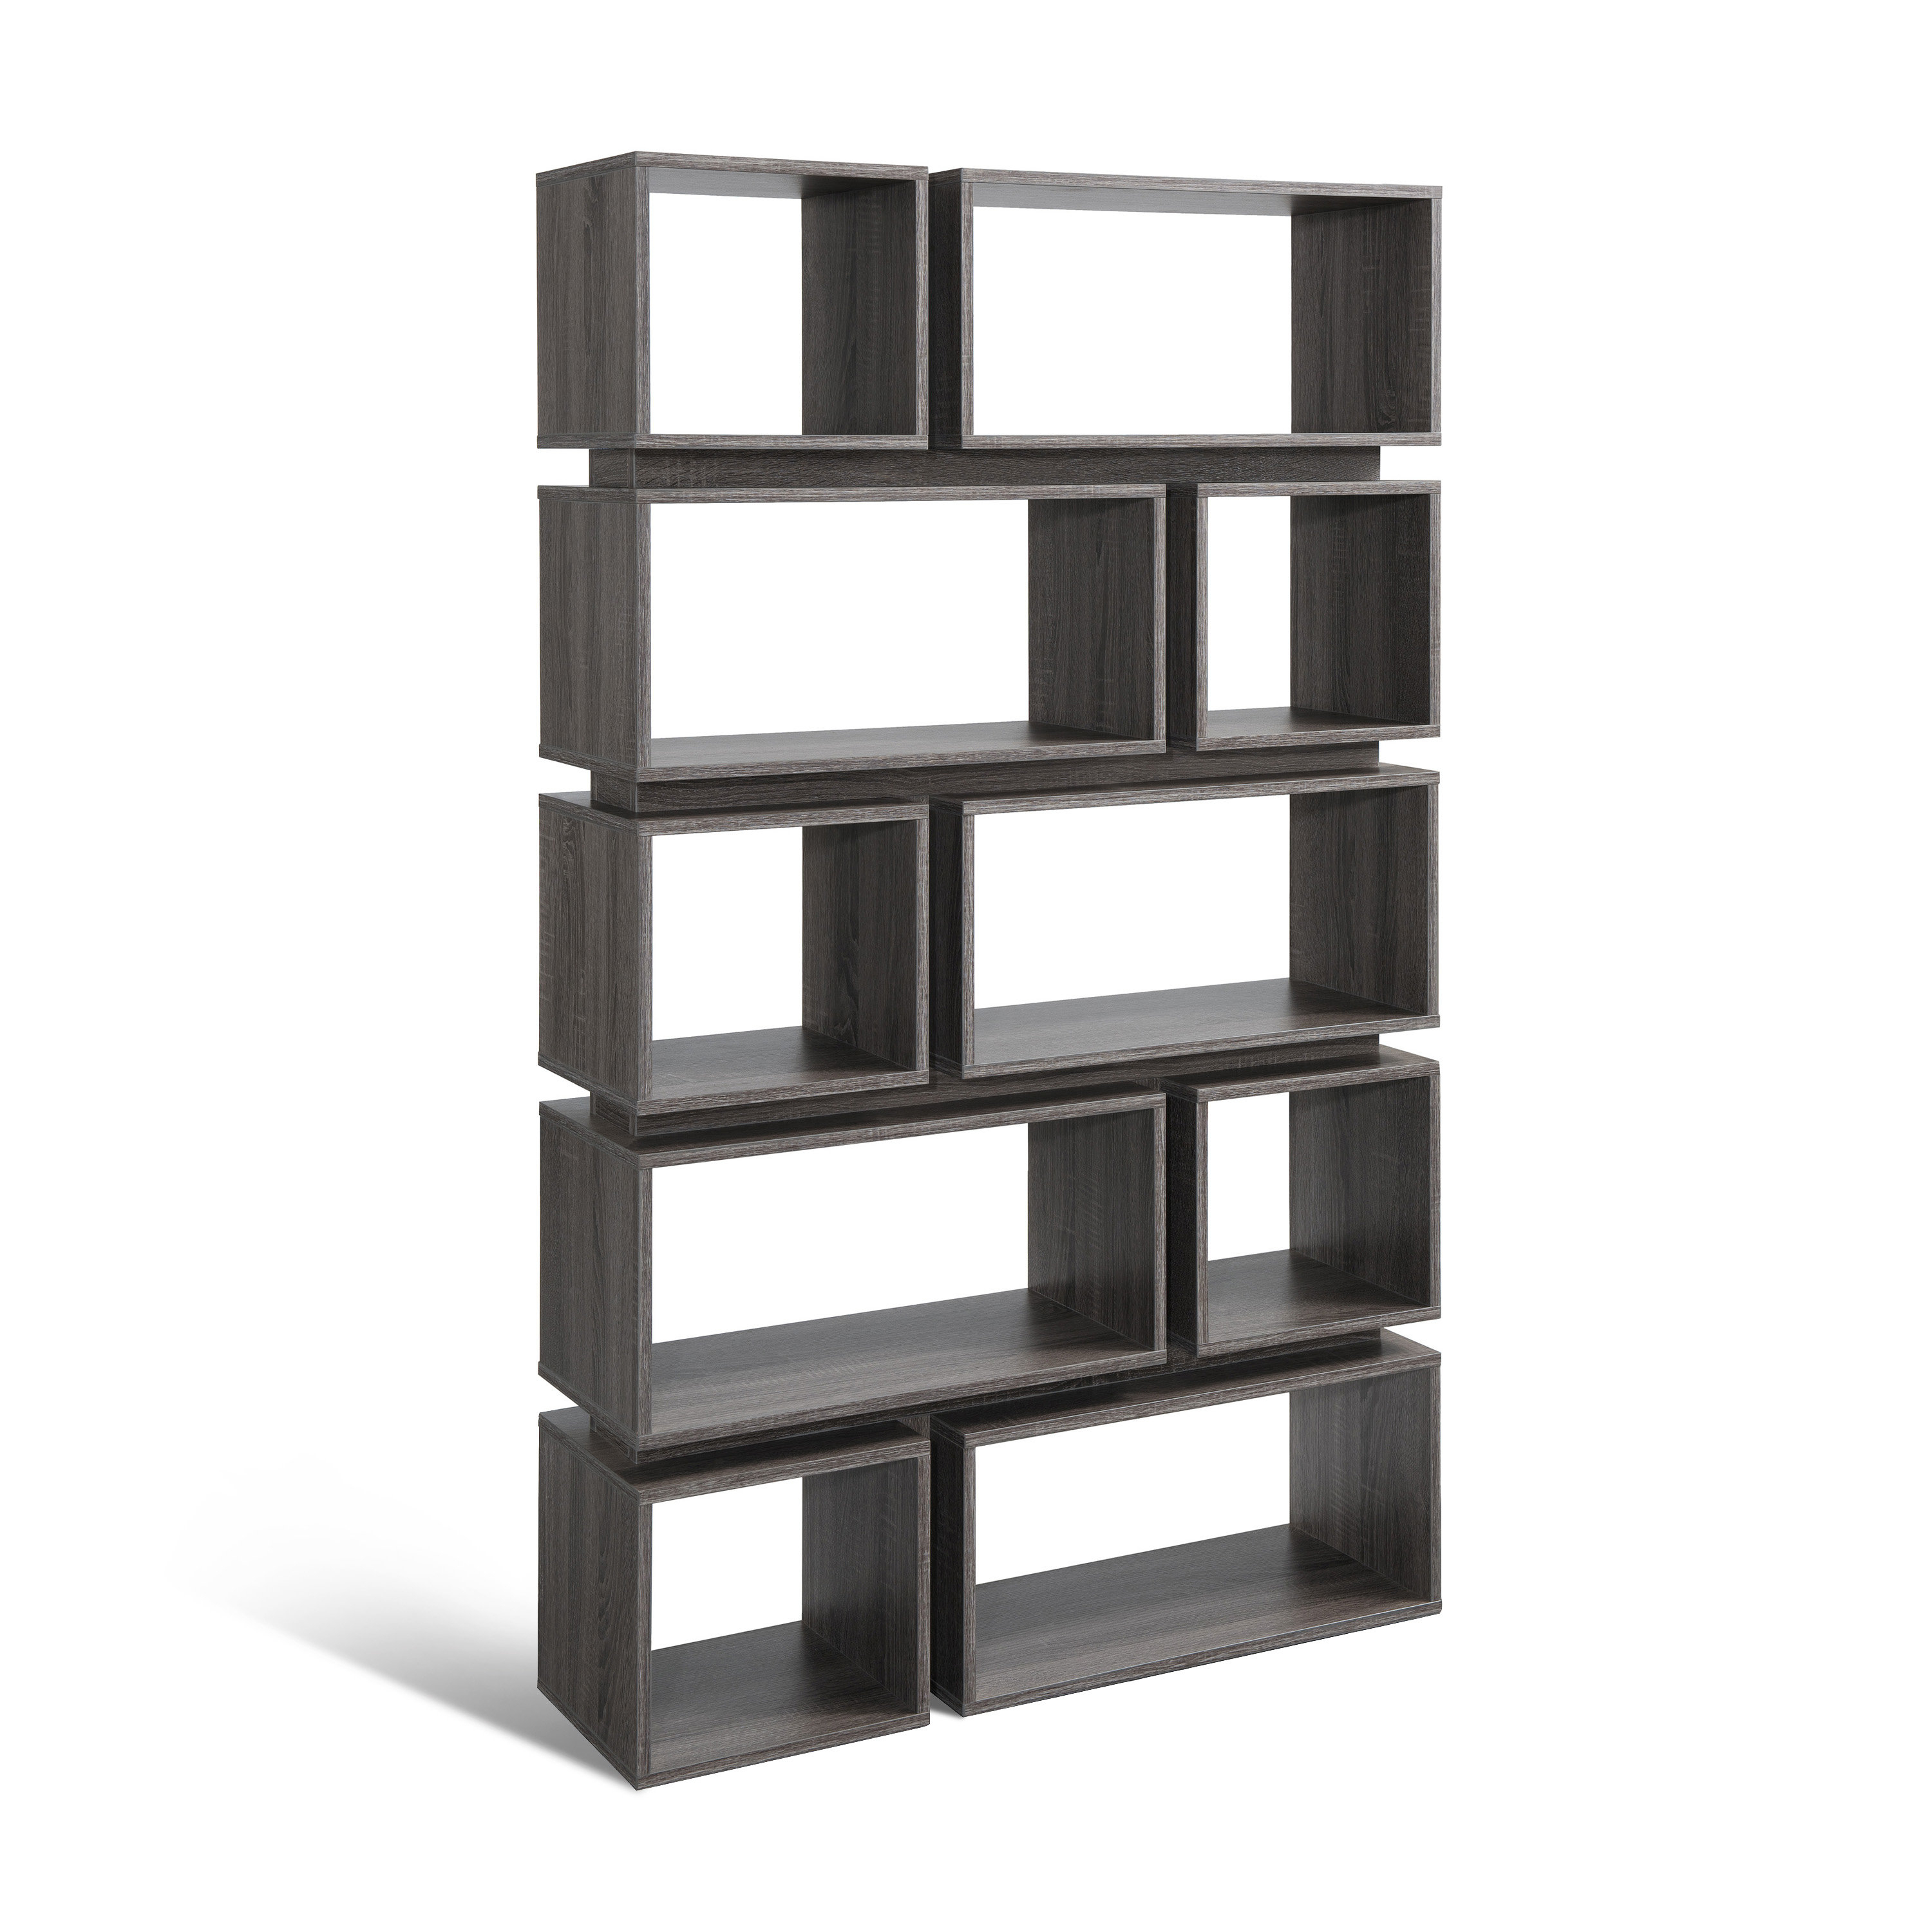 Allmodern Regarding Favorite Harkless Standard Bookcases (View 16 of 20)